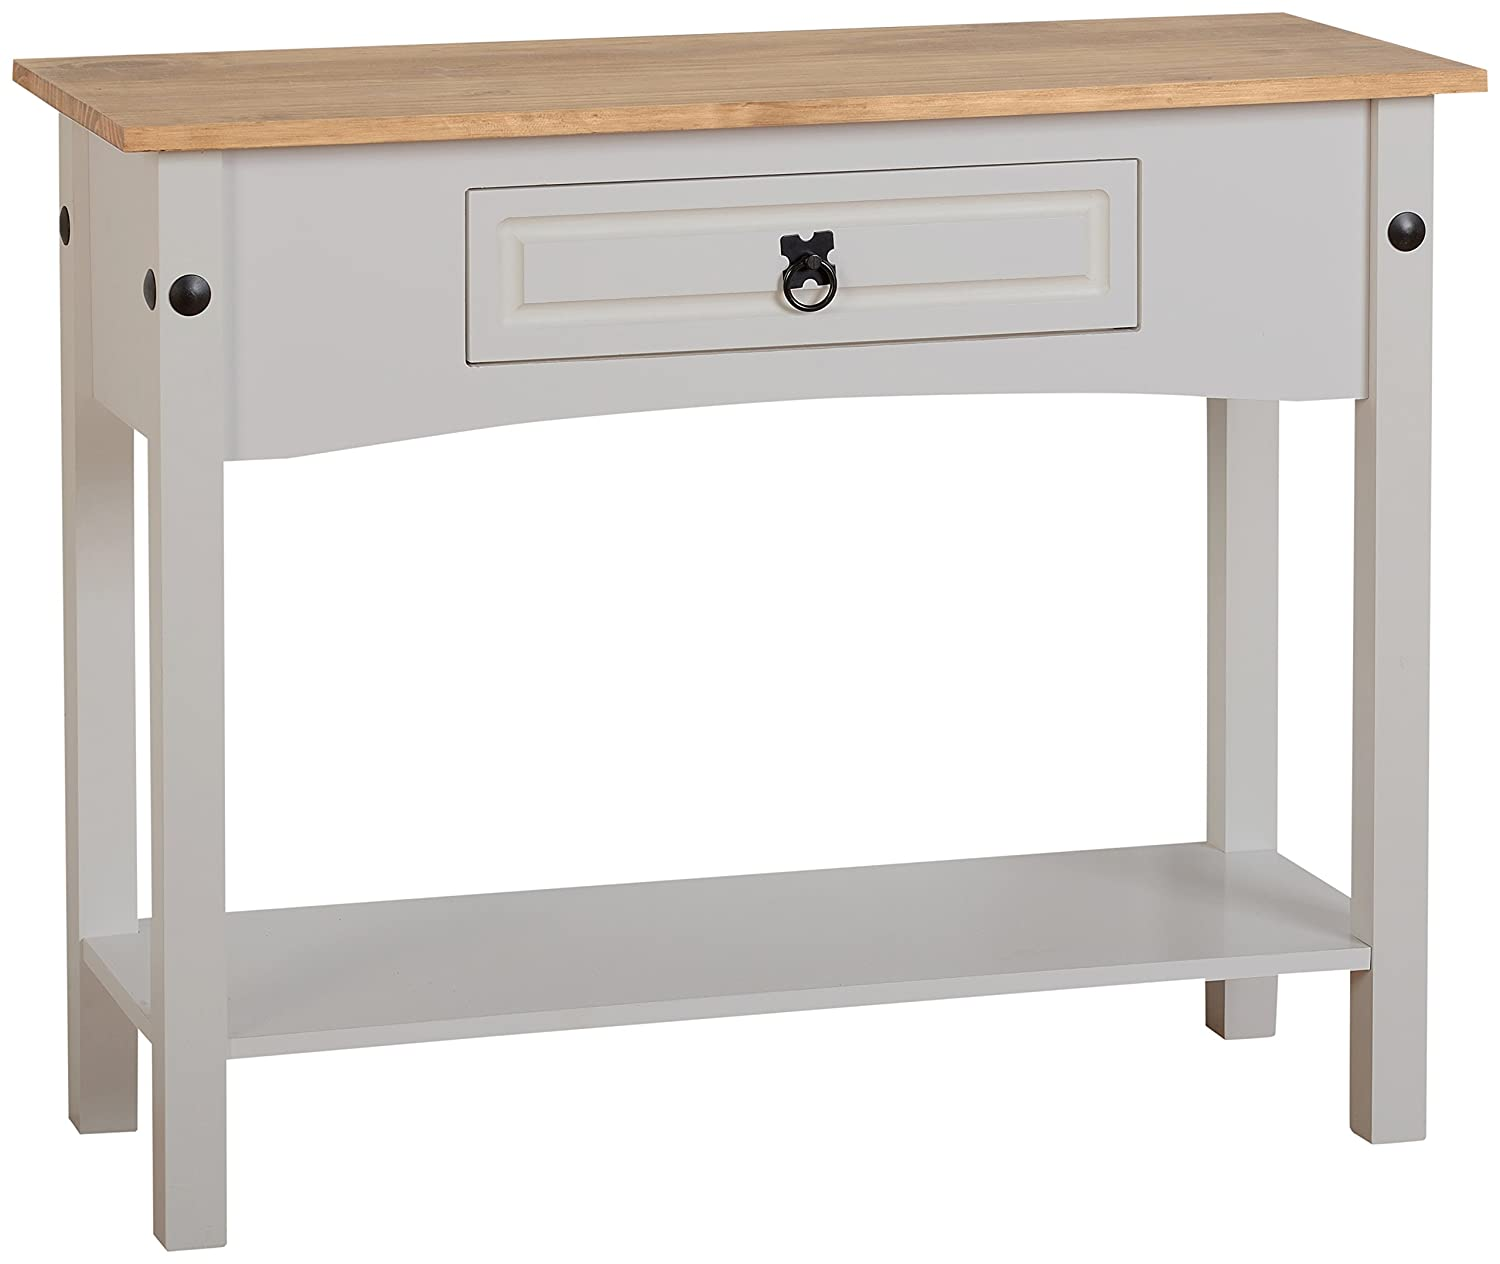 Seconique Corona 1 Drawer Console Table with Shelf, Wood, Grey/Distressed Waxed Pine, 439.95x1019.95x114.95 cm 300-304-009